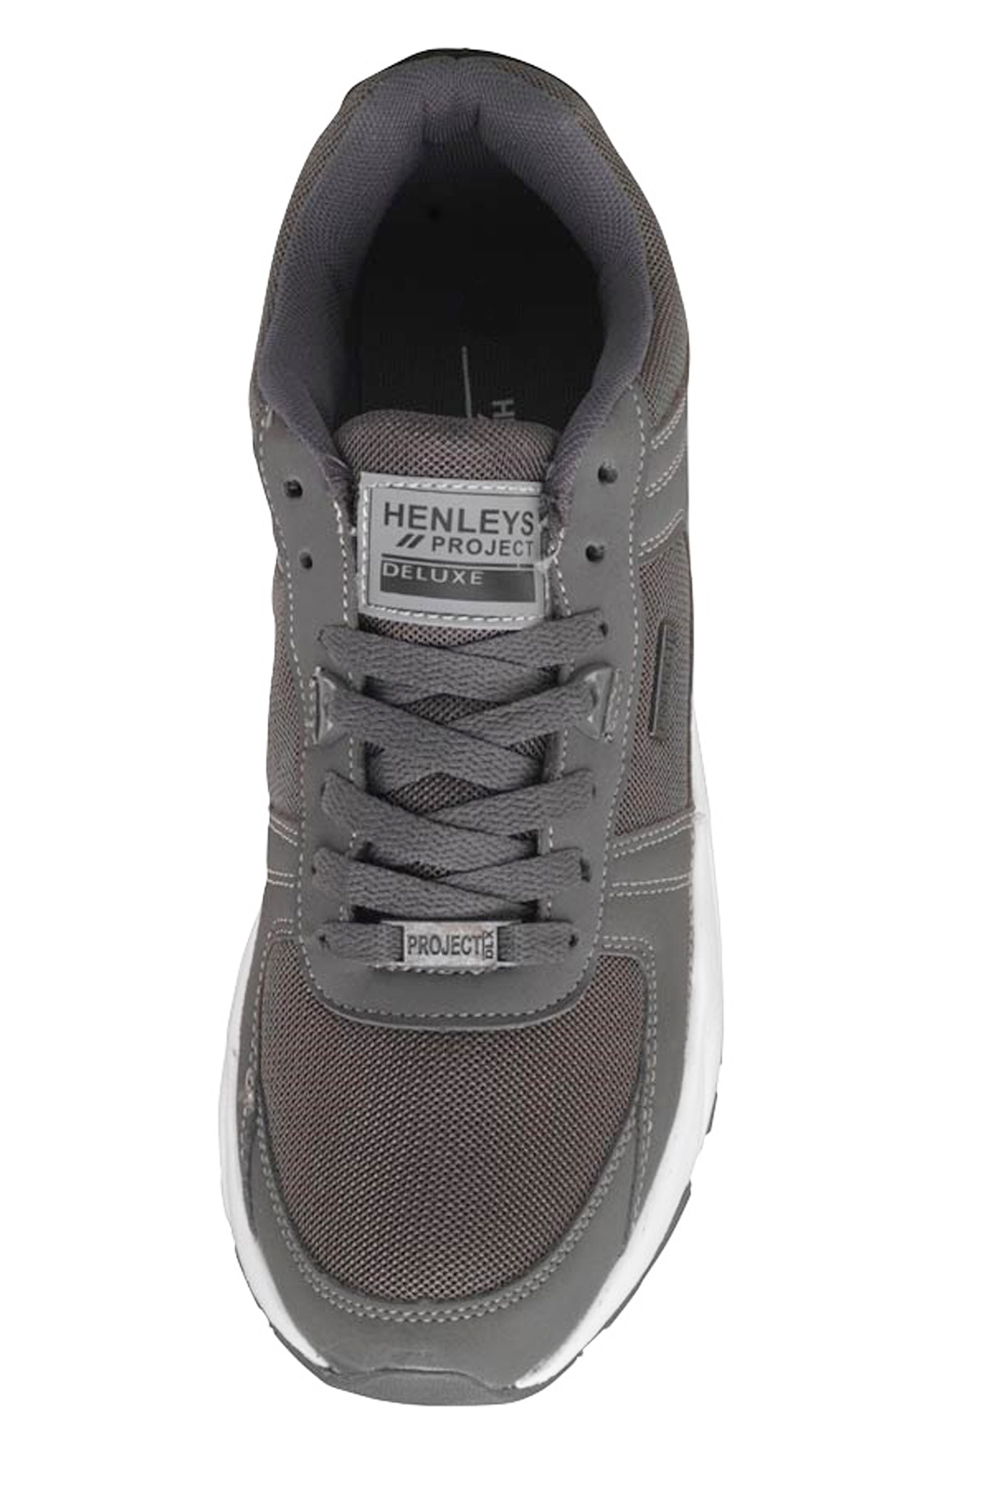 Henleys-Drexel-Markcus-Mens-Lace-Up-Low-Top-Trainers-Sport-Tennis-Casual-Shoes thumbnail 17